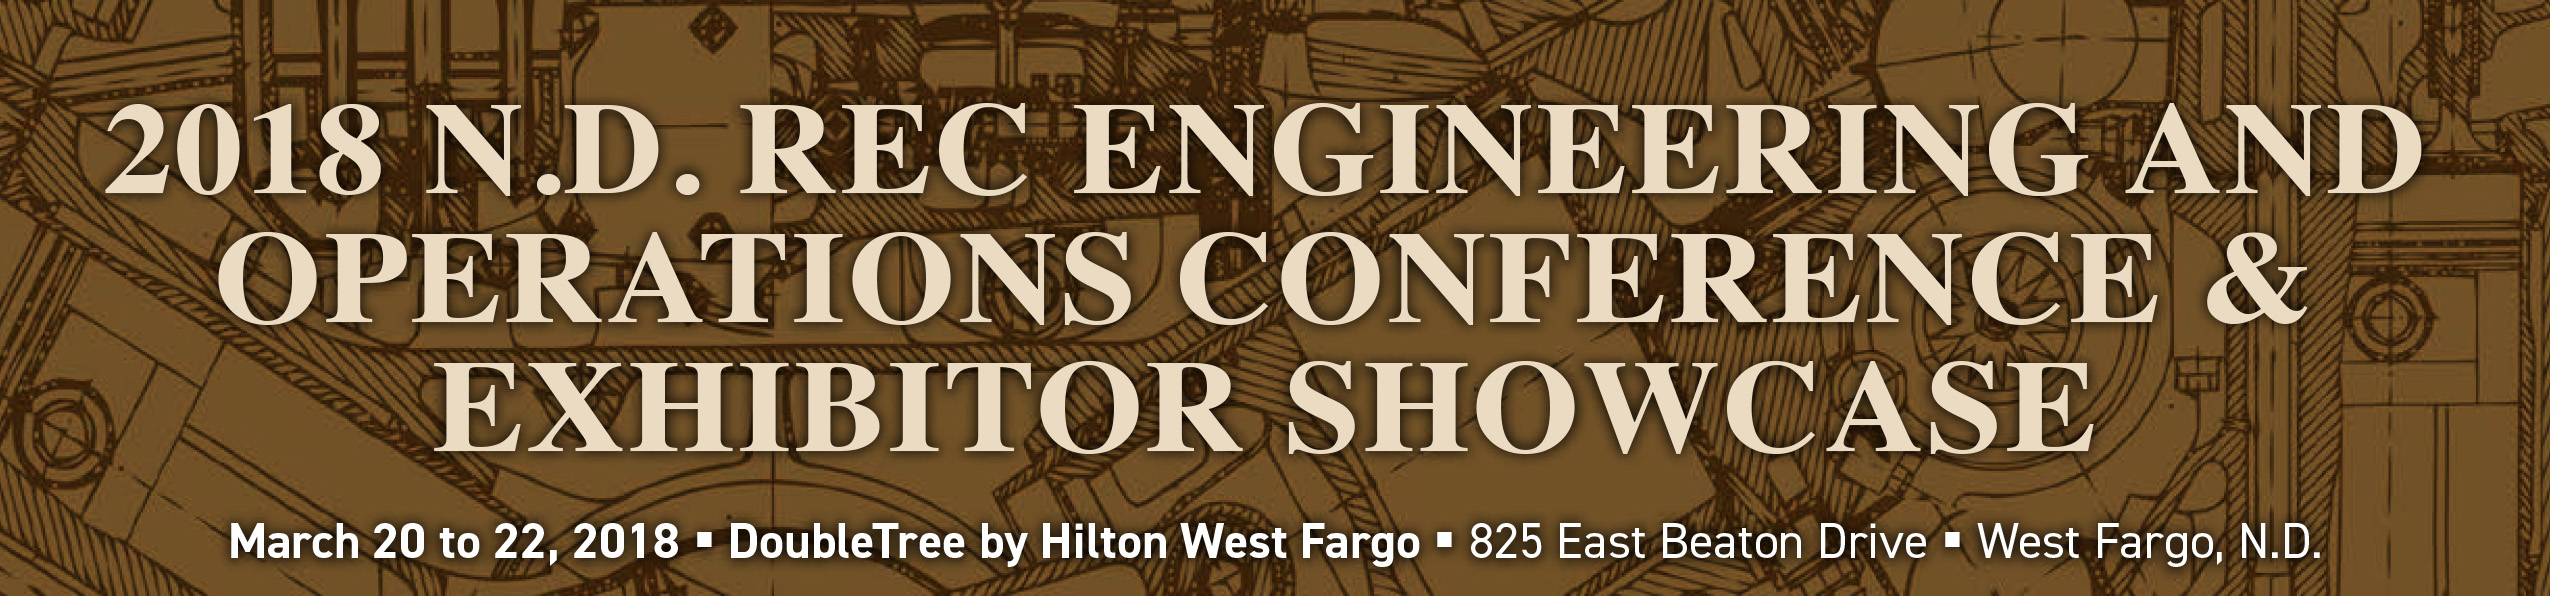 Register for 2018 Engineering Conference